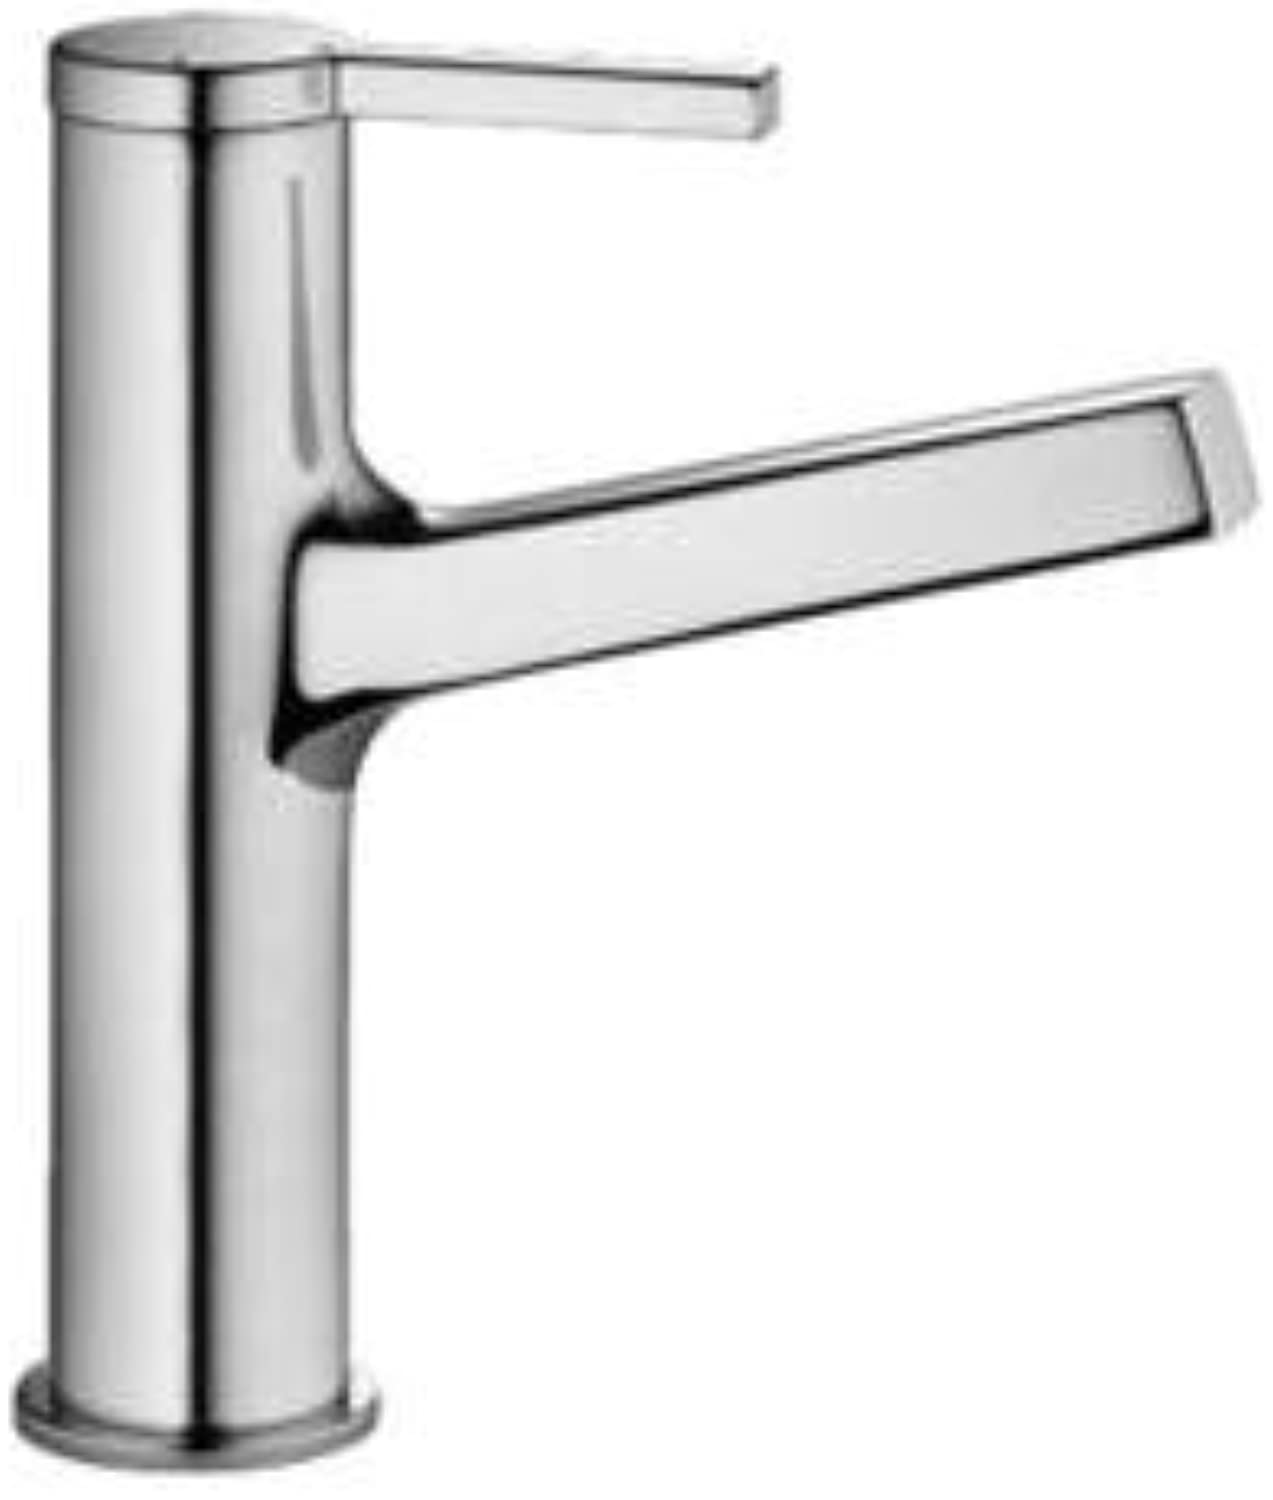 KWC 12.191.032.127 - Ava Single Lever Basin Mixer Fixed Spout W Pop-Up - Splendure Stainless Steel